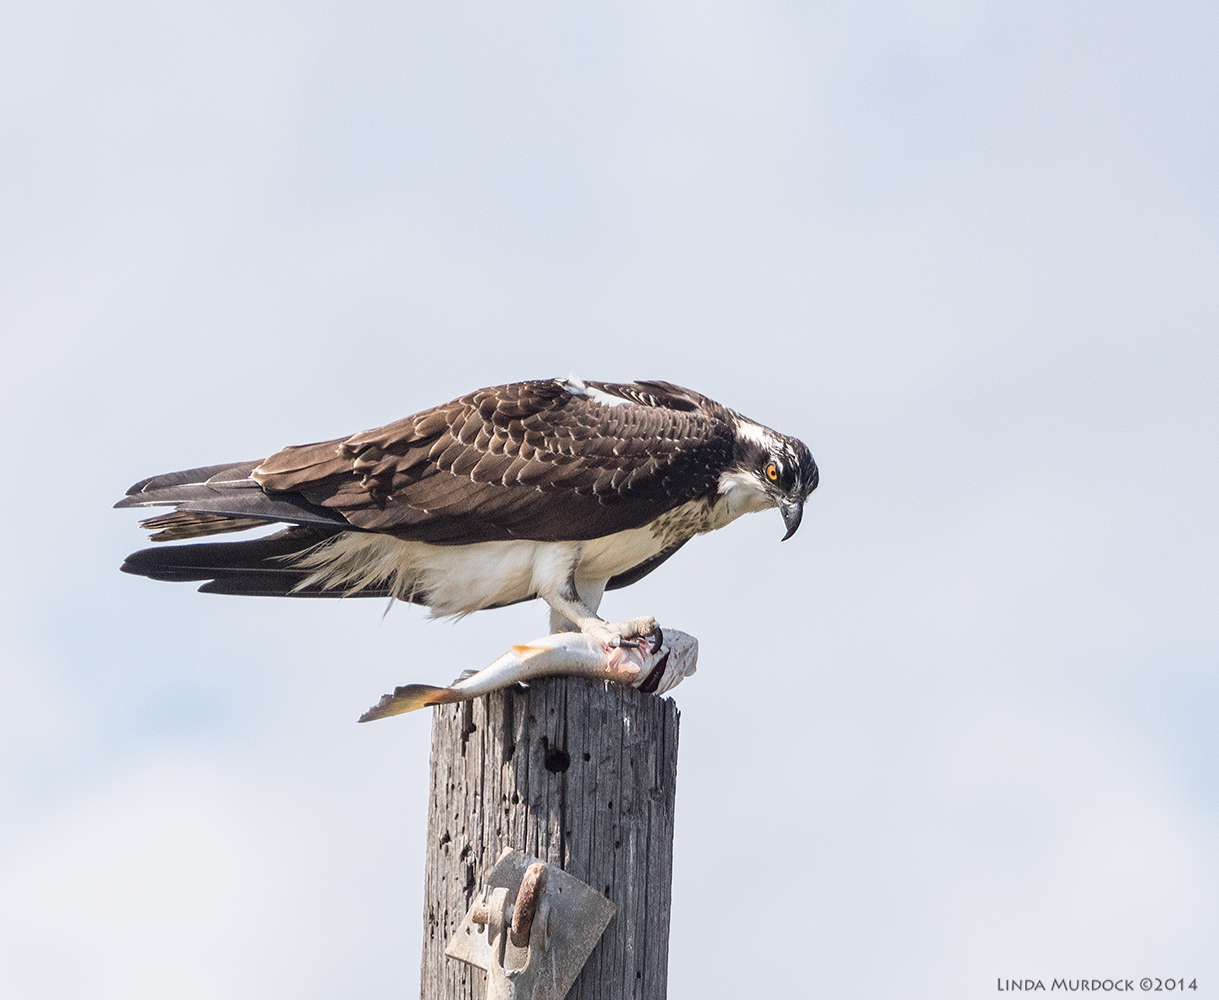 October #1 Osprey with Redfish    Sony A77 II with 70-400mm G21/1600 sec. f/7.1 ISO 640